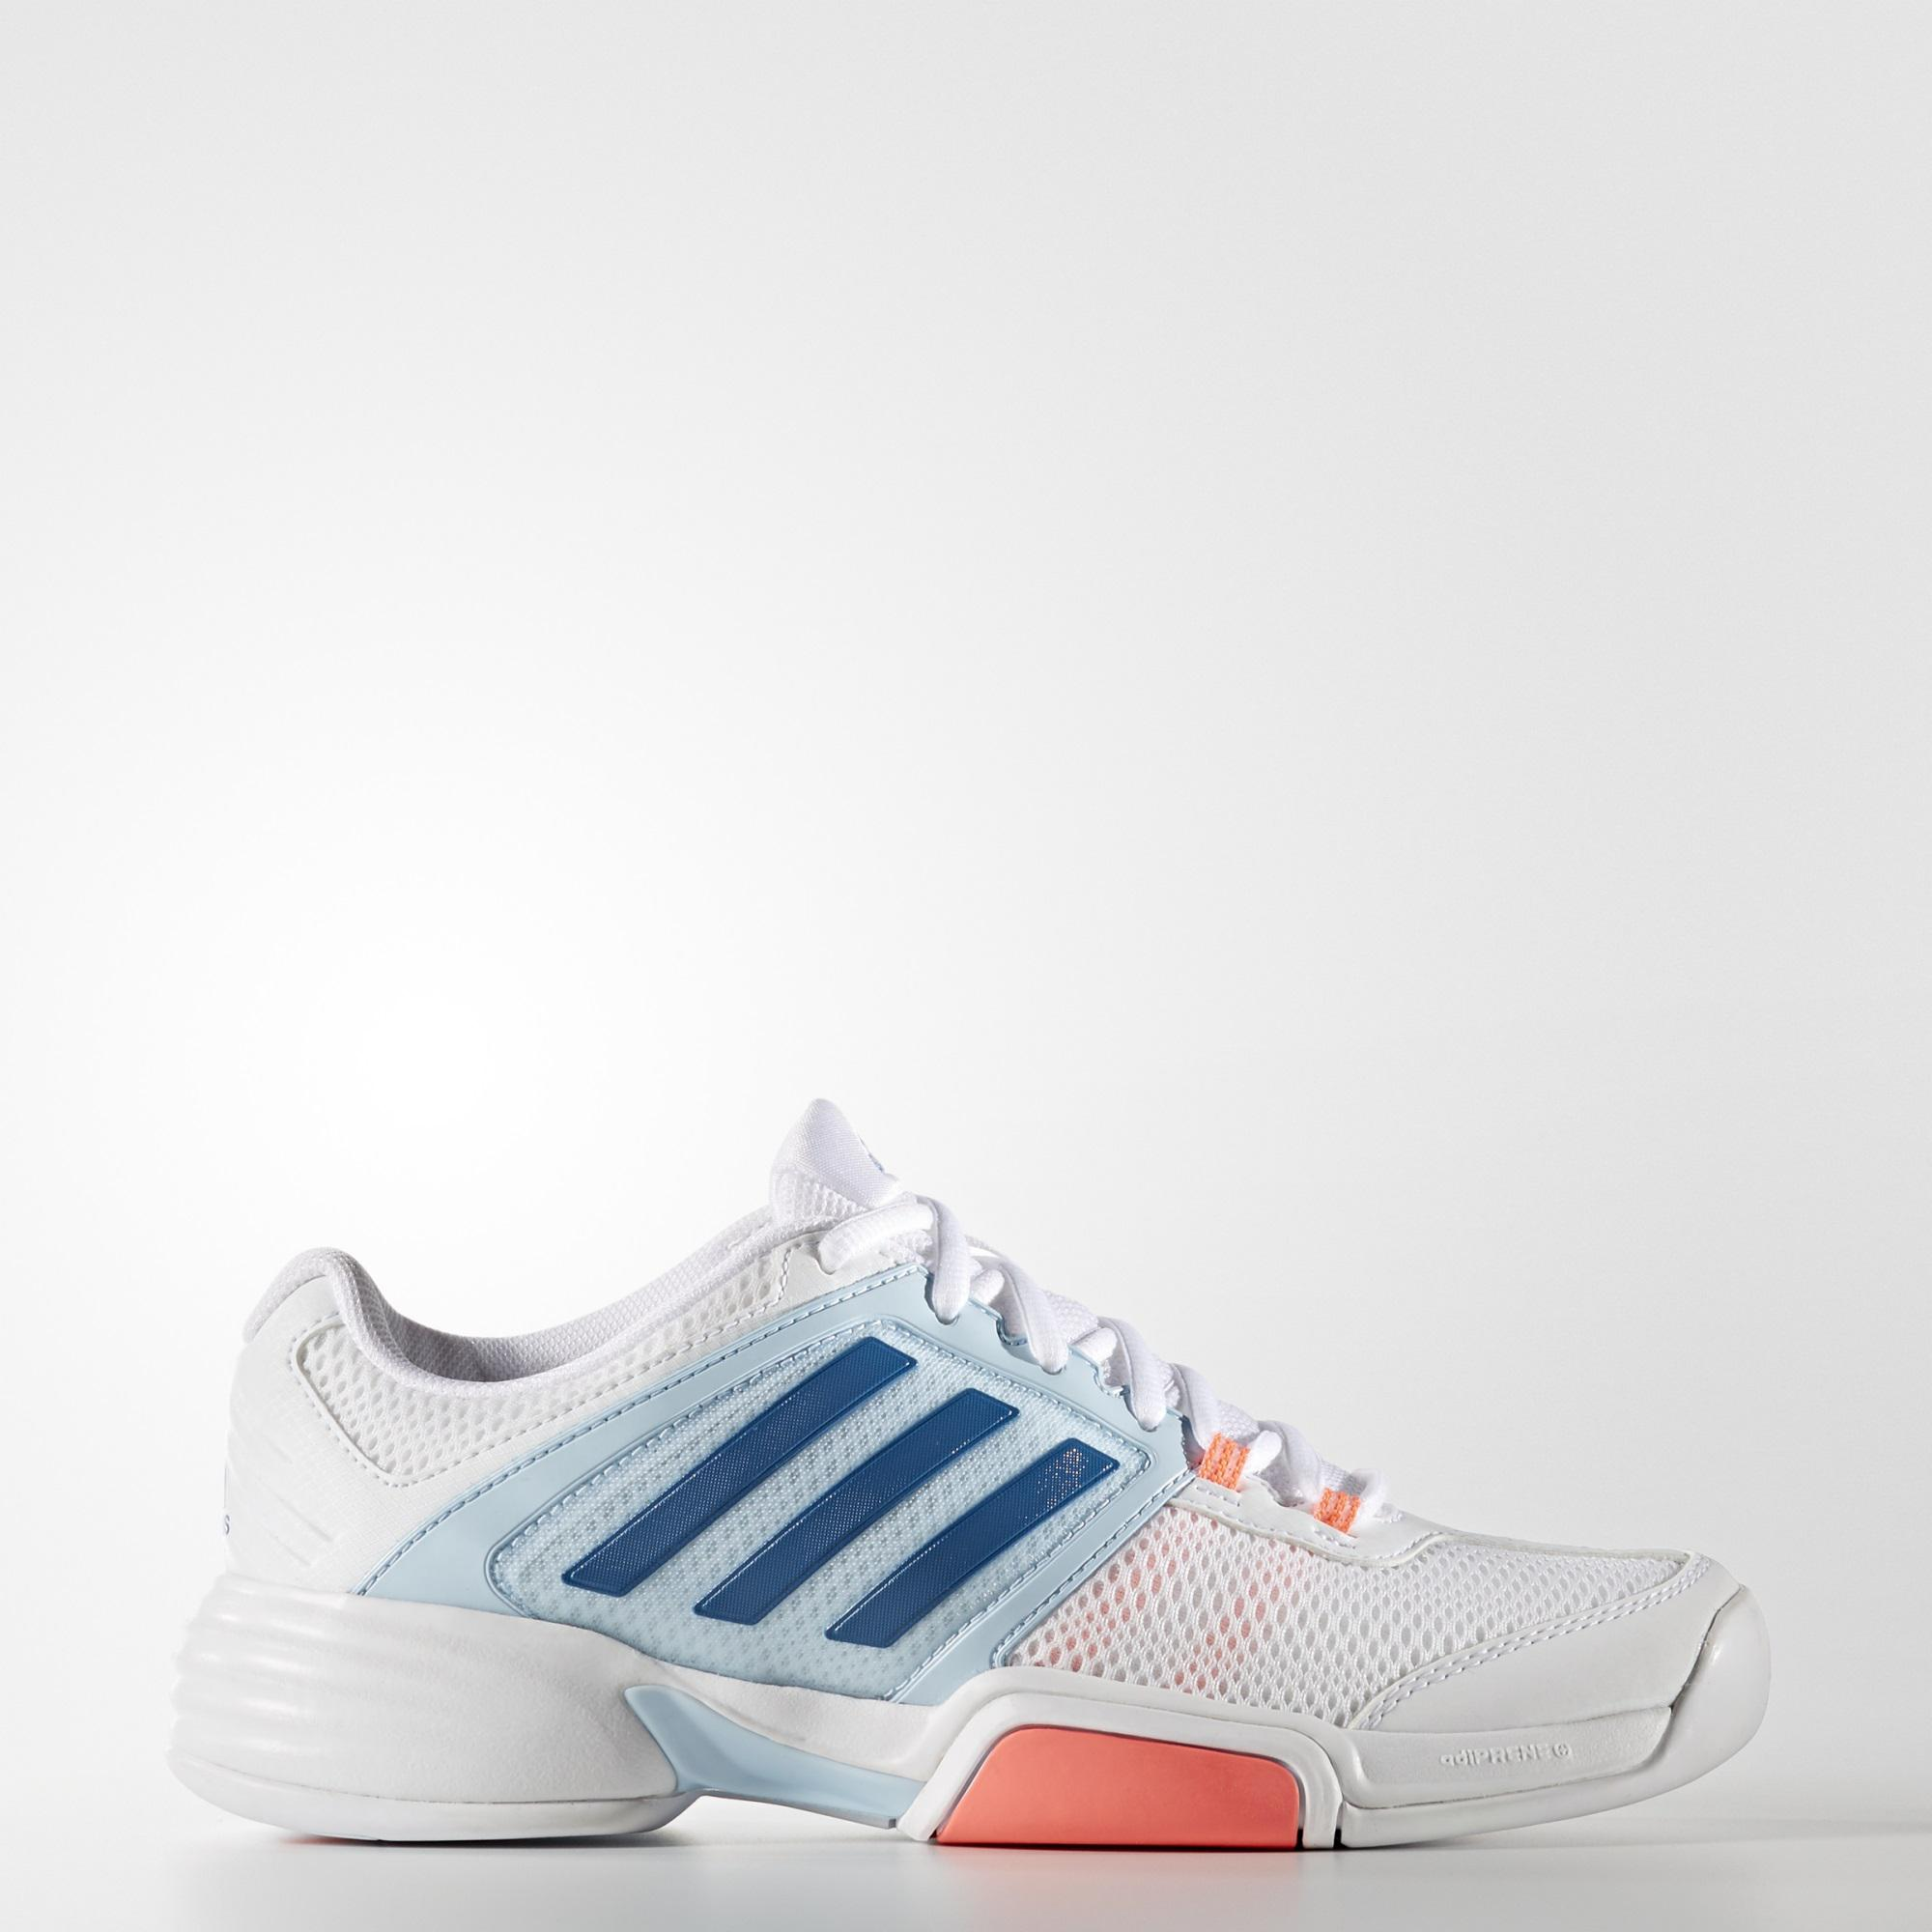 Adidas Womens Barricade Club Carpet Tennis Shoes - White Blue -  Tennisnuts.com 22734b274